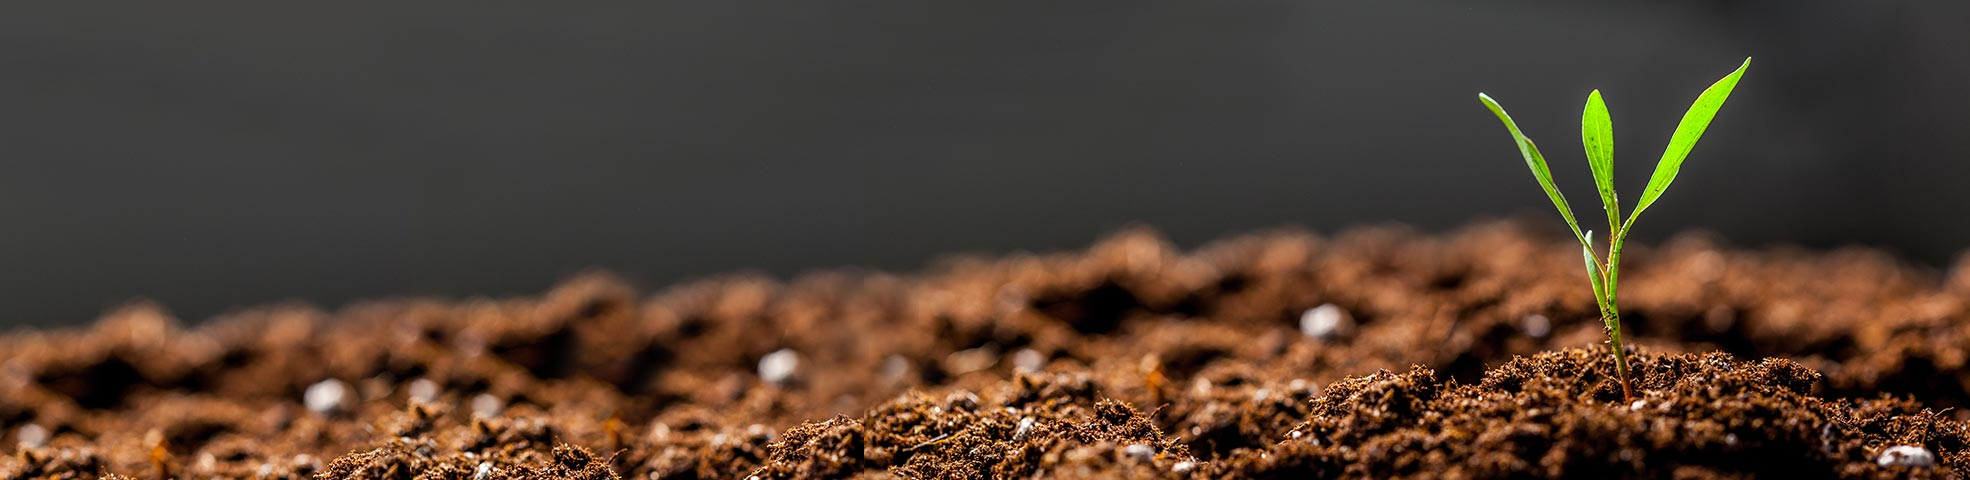 What Is Soil Health Management & Why Is It Important?   SoilRight